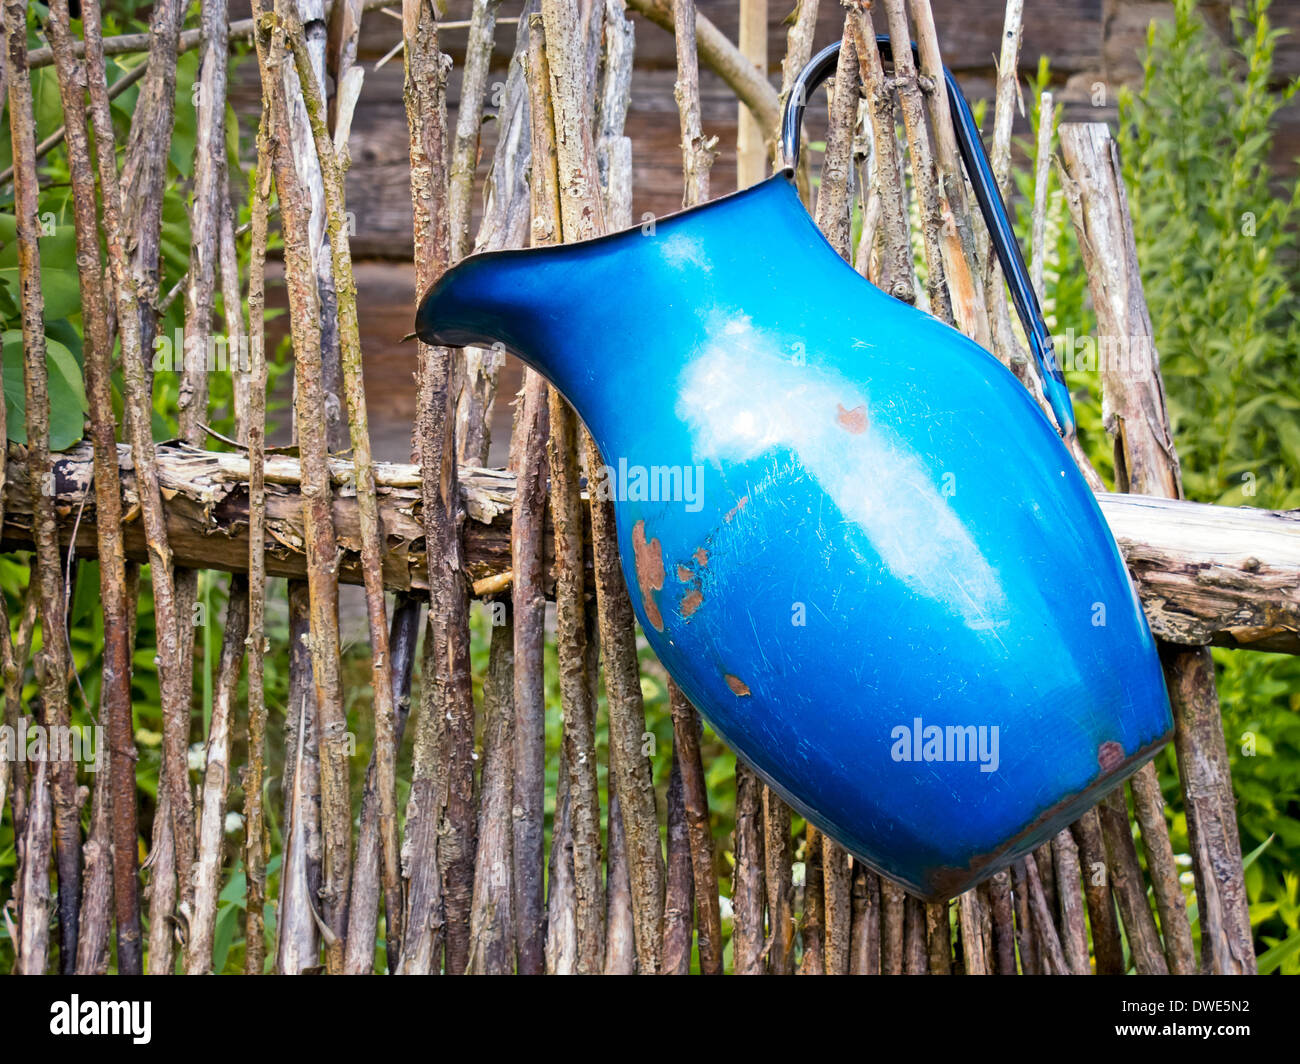 Blue pitcher on a fence - Stock Image